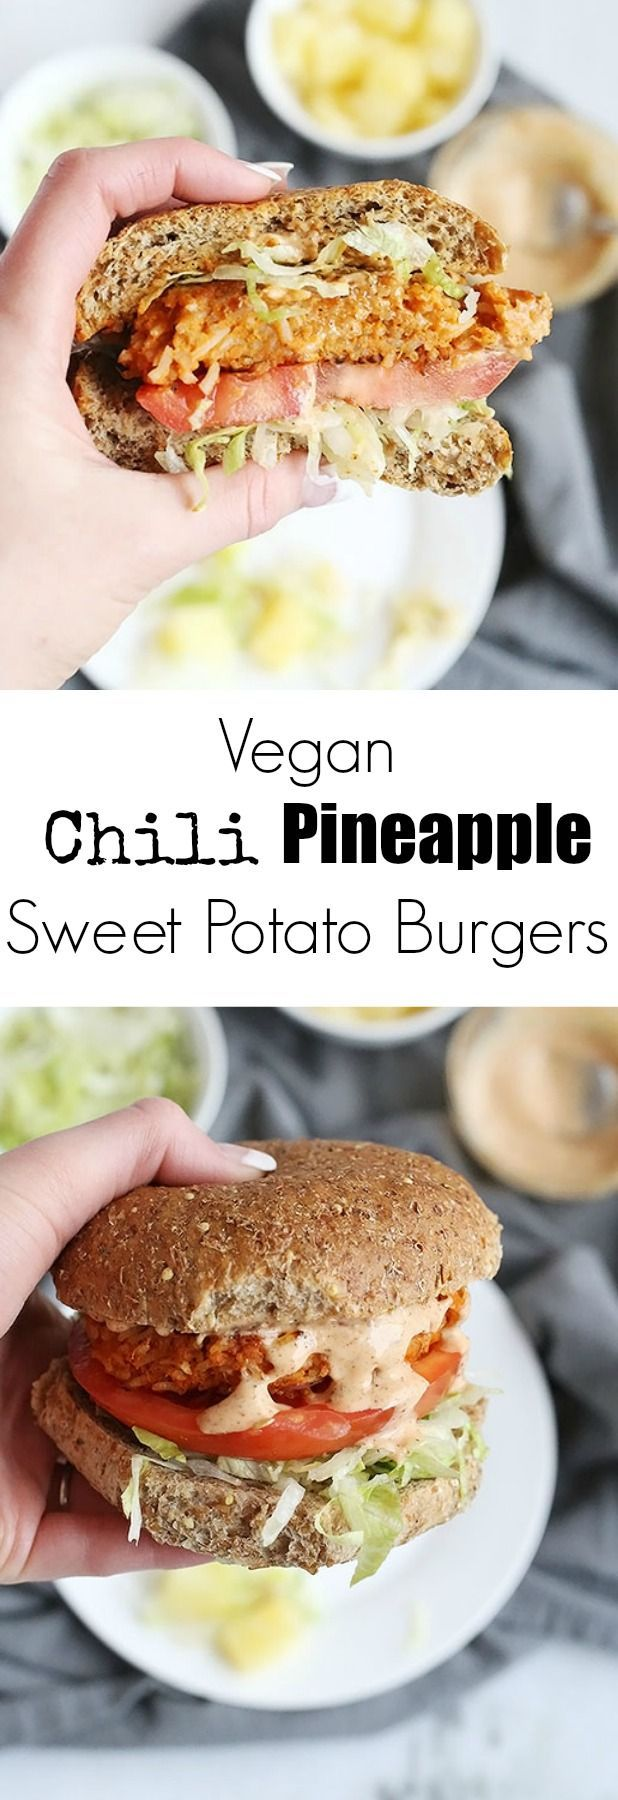 These Vegan Chili Pineapple Sweet Potato Burgers are FULL of flavor! sweet pineapple and spicy chili make an amazing combo. A chili flavored spread pairs perfectly with these burgers! Vegan and Gluten Free Option. /